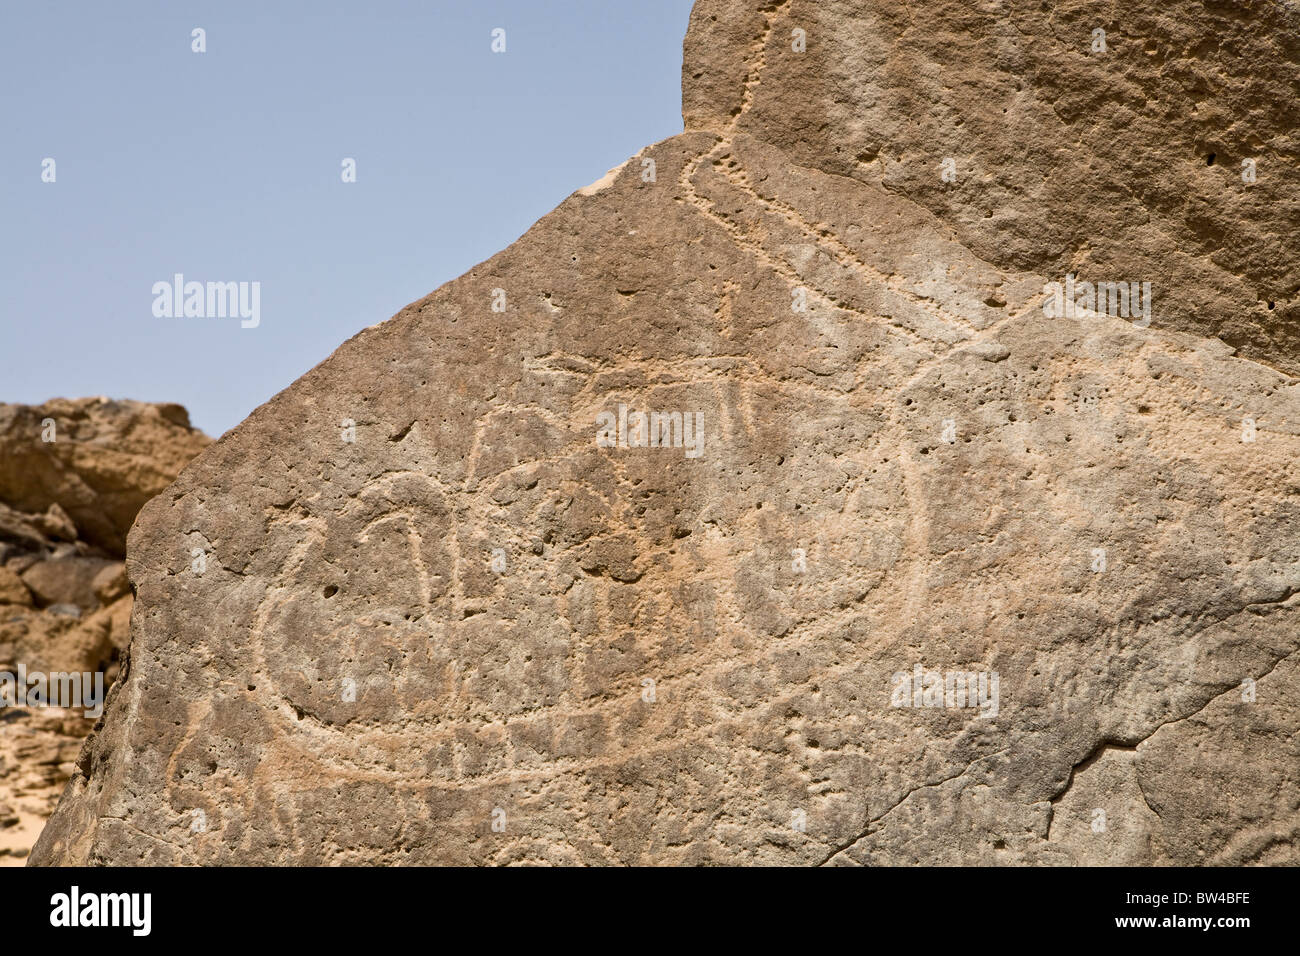 Petroglyph of boat and animals on a rock-face  in the Eastern Desert, Egypt - Stock Image